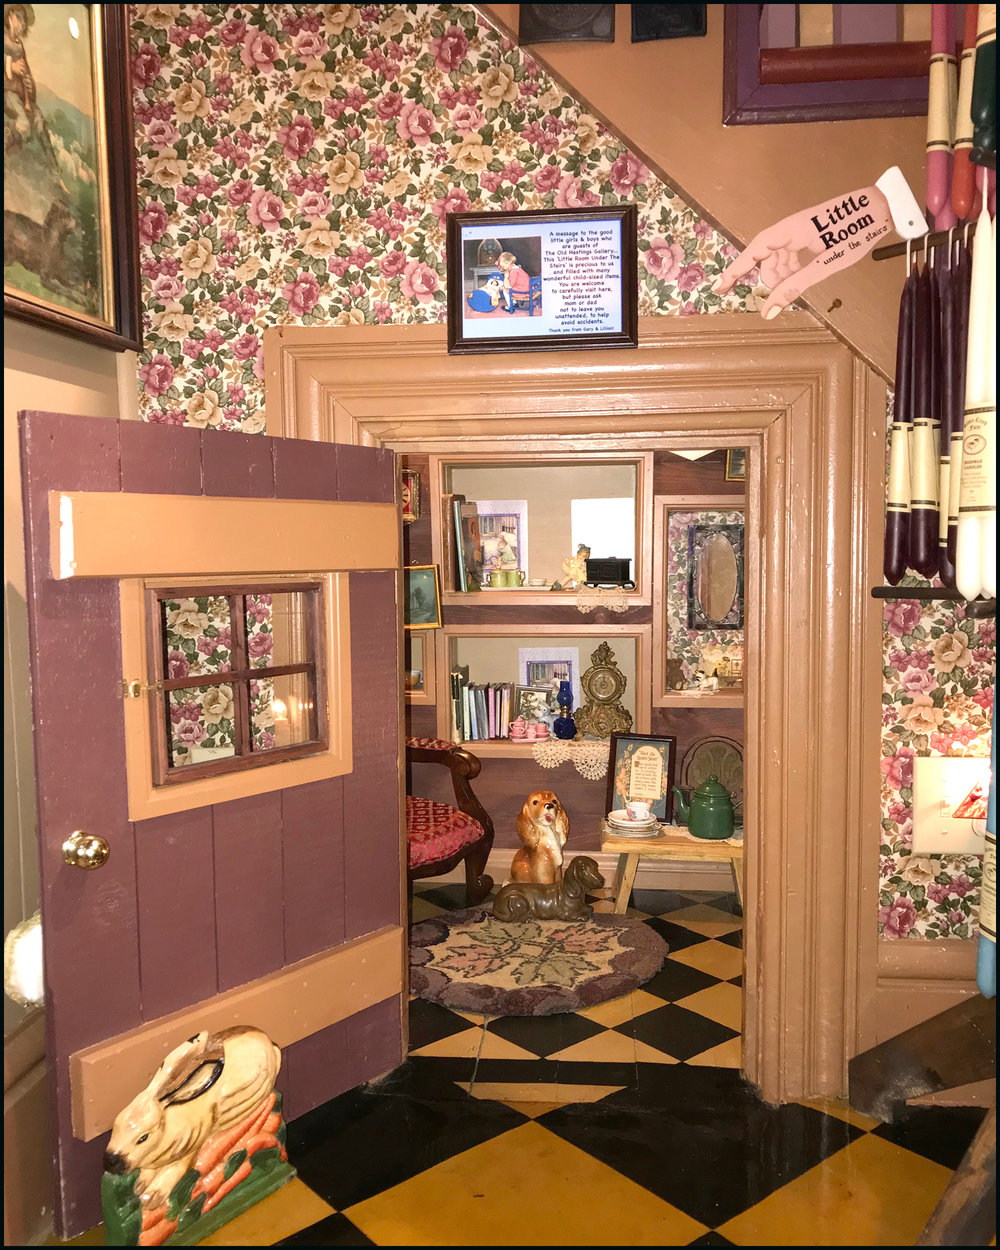 A customer favourite… The Little Room Under the Stairs.